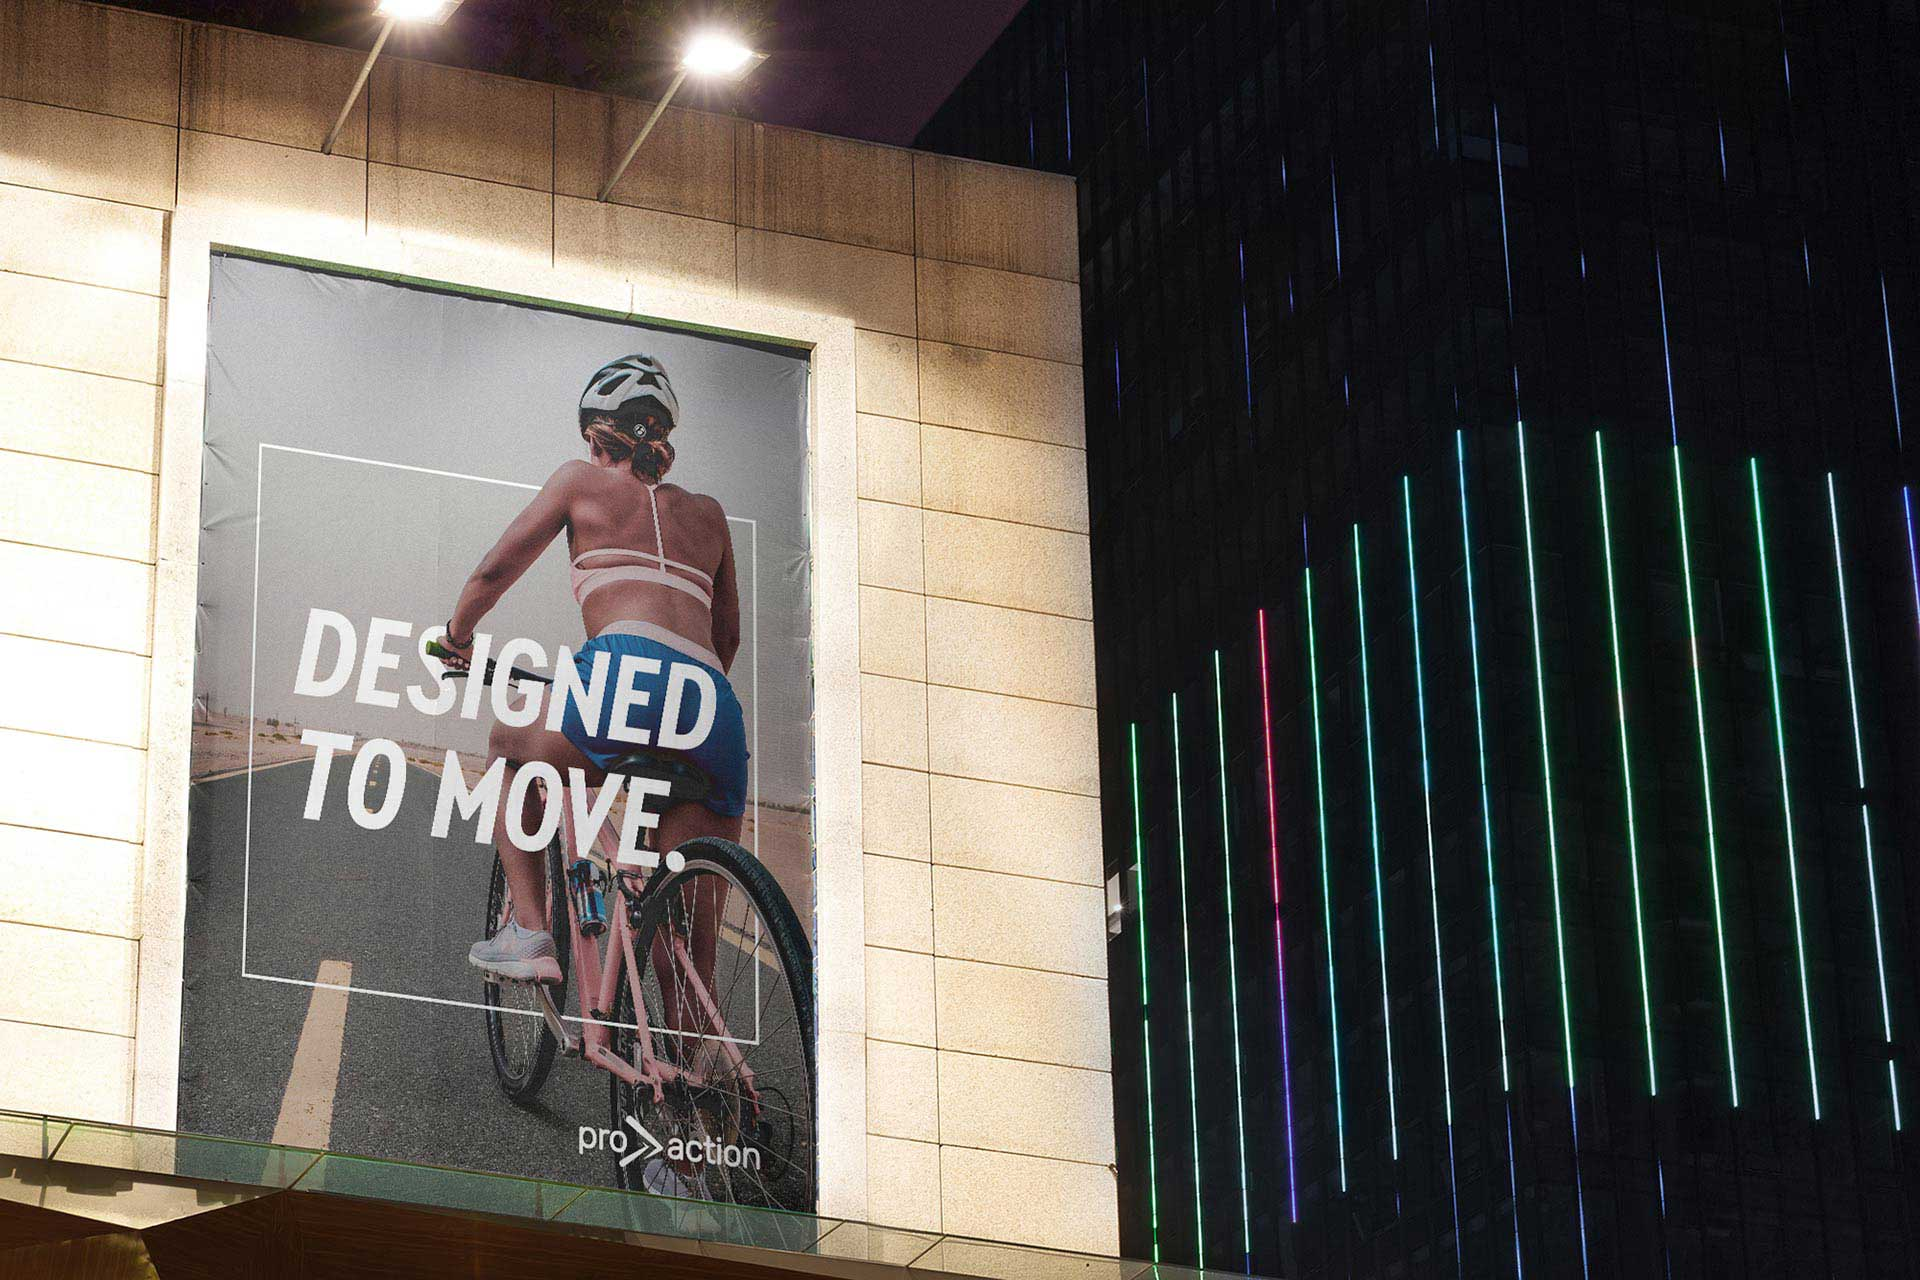 Pro action outdoor billboard advertising with girl on a cycle looking towards long road ahead